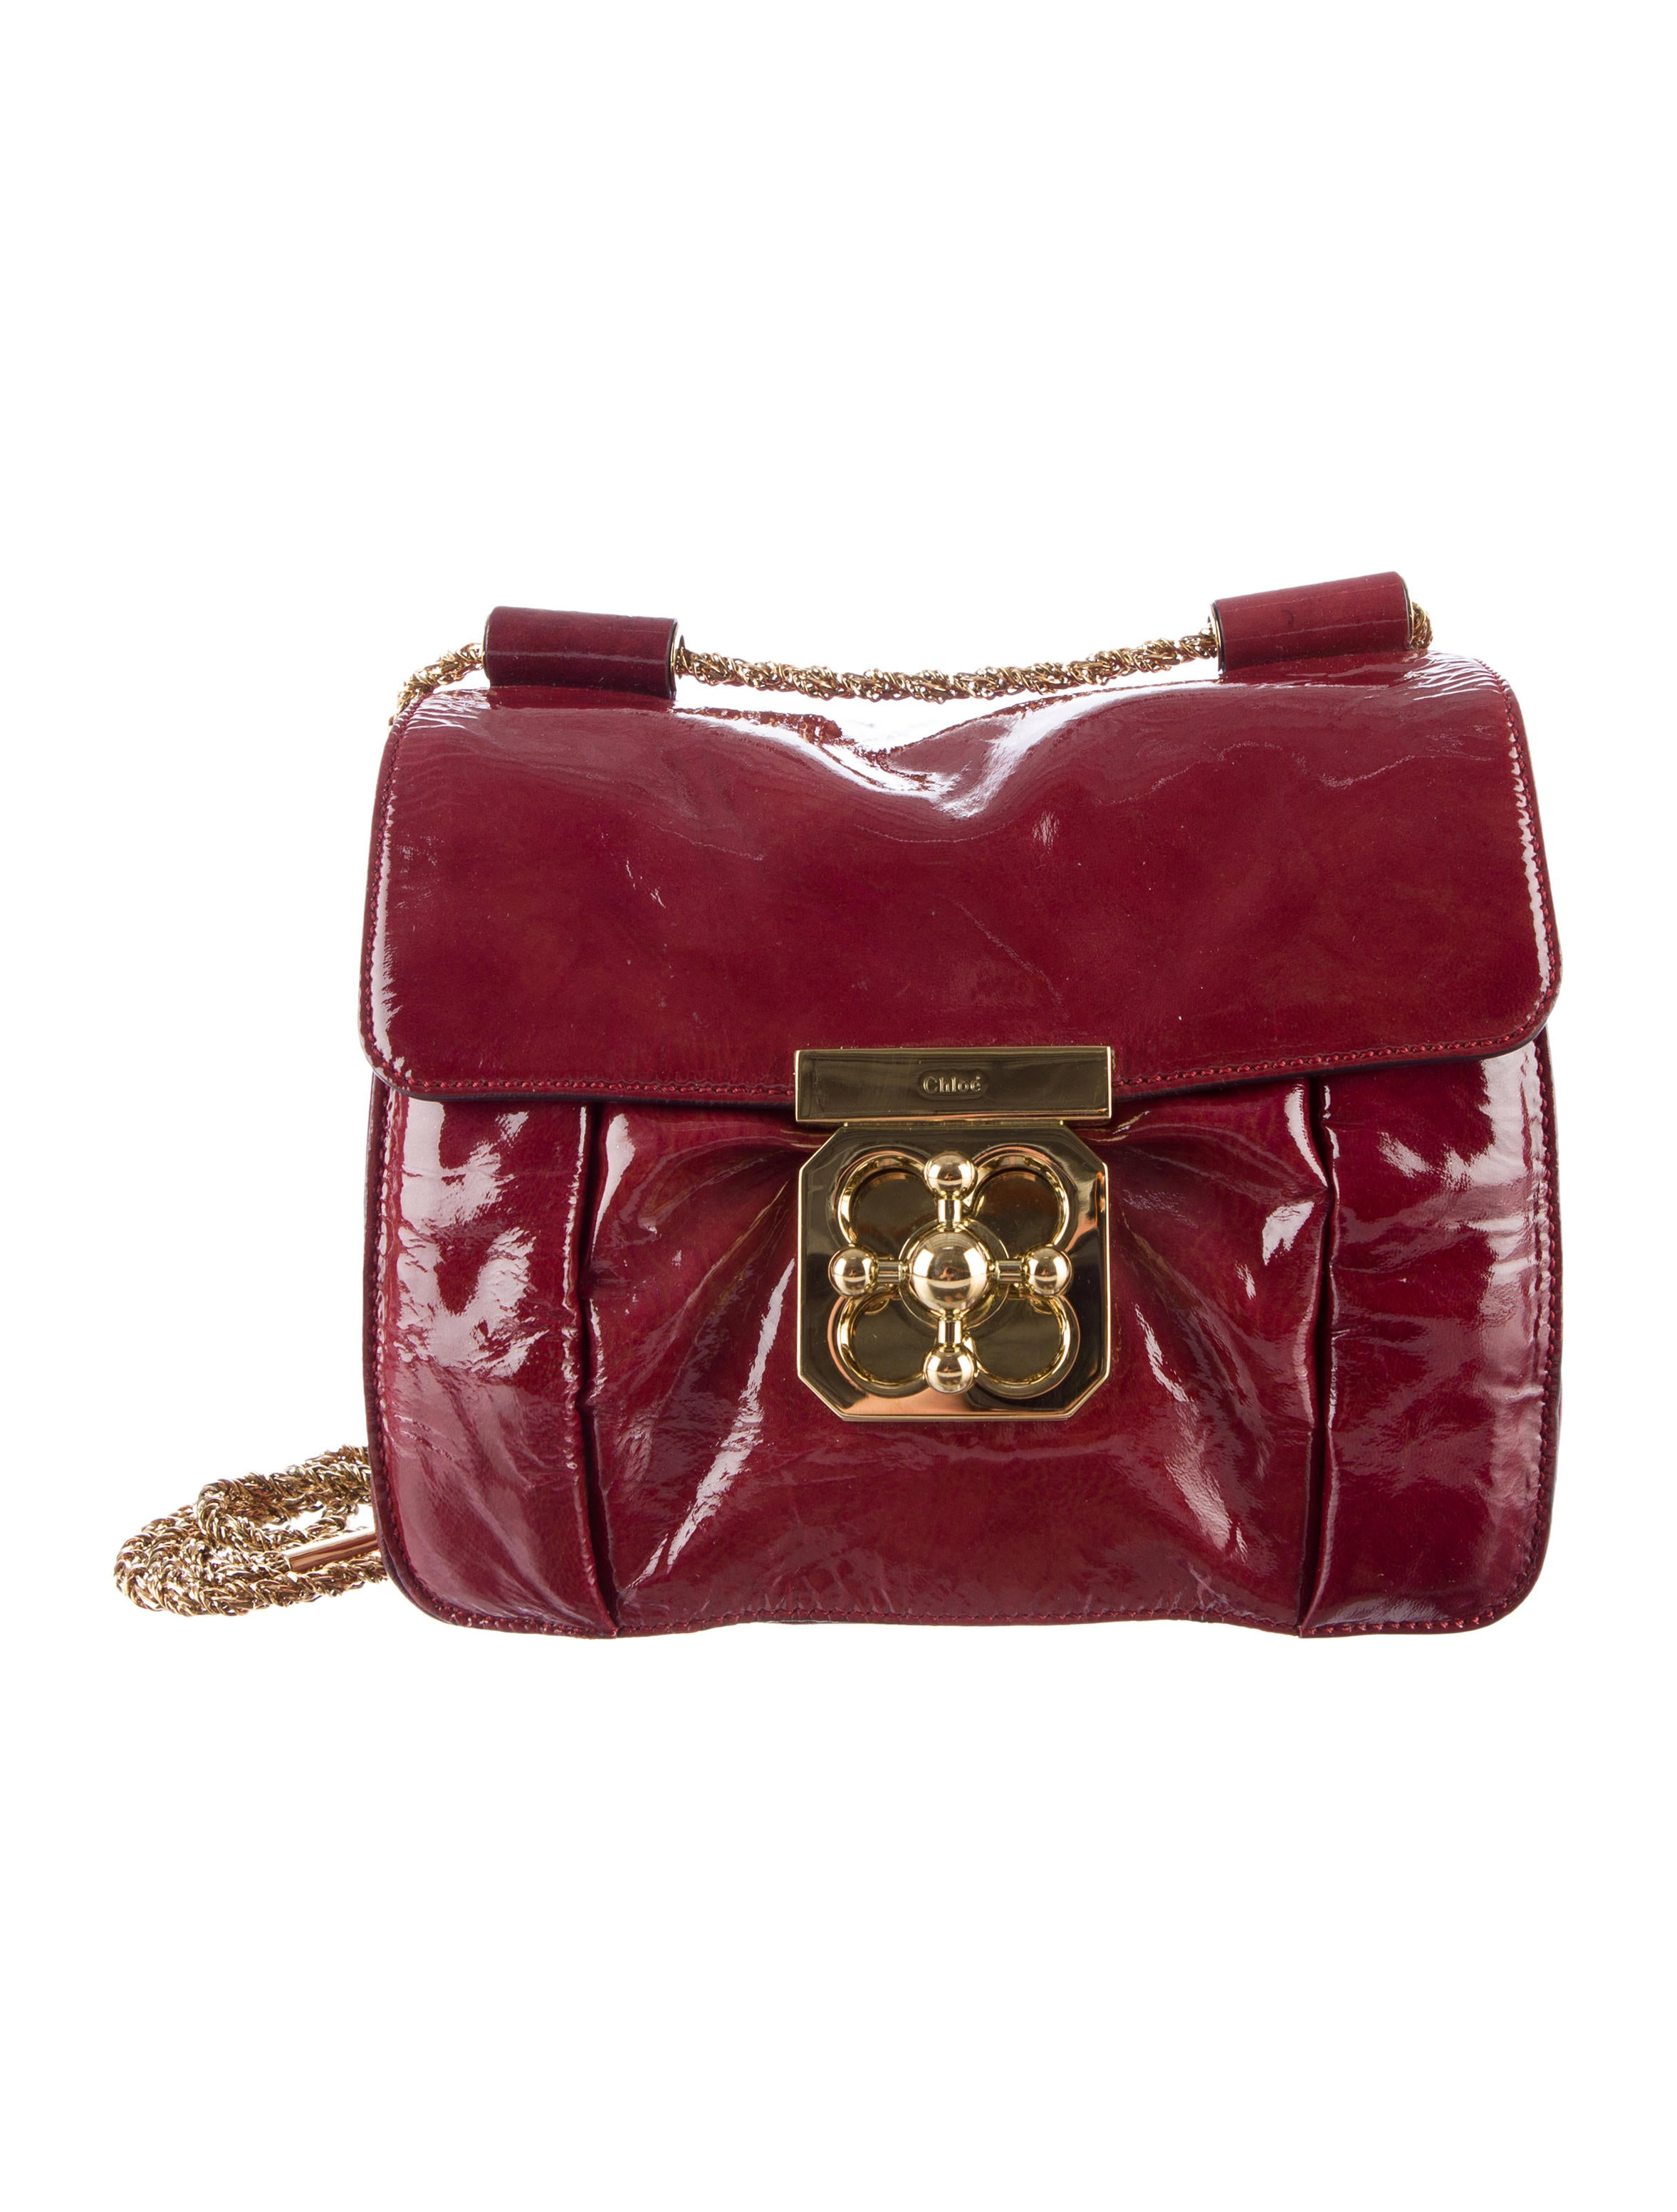 chloe patent leather elsie shoulder bag